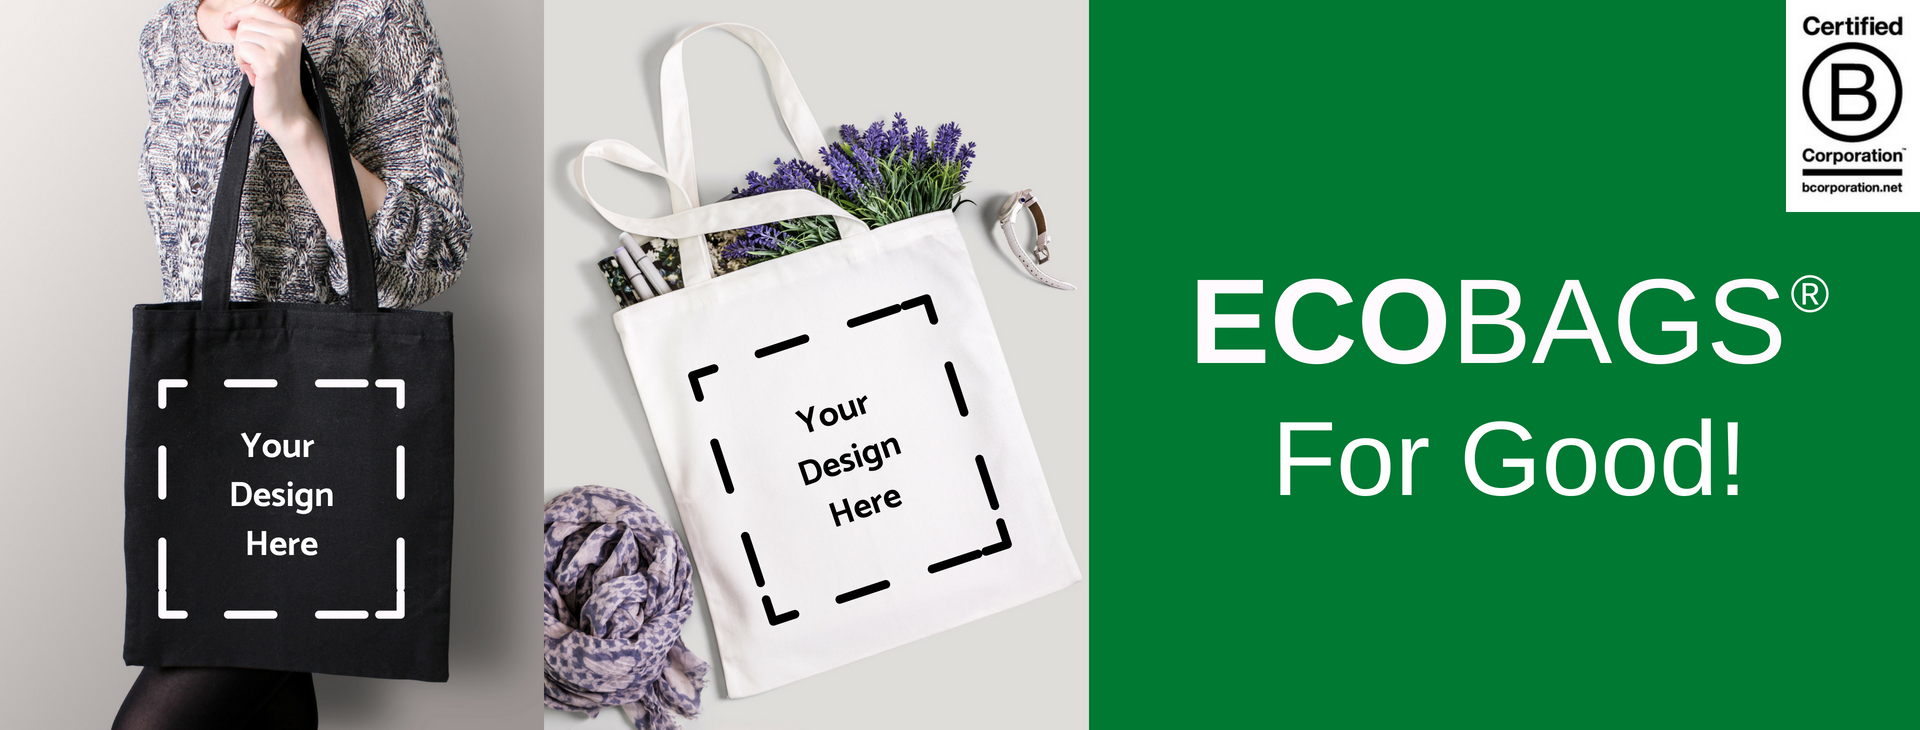 ECOBAGS for GOOD - Fundraising